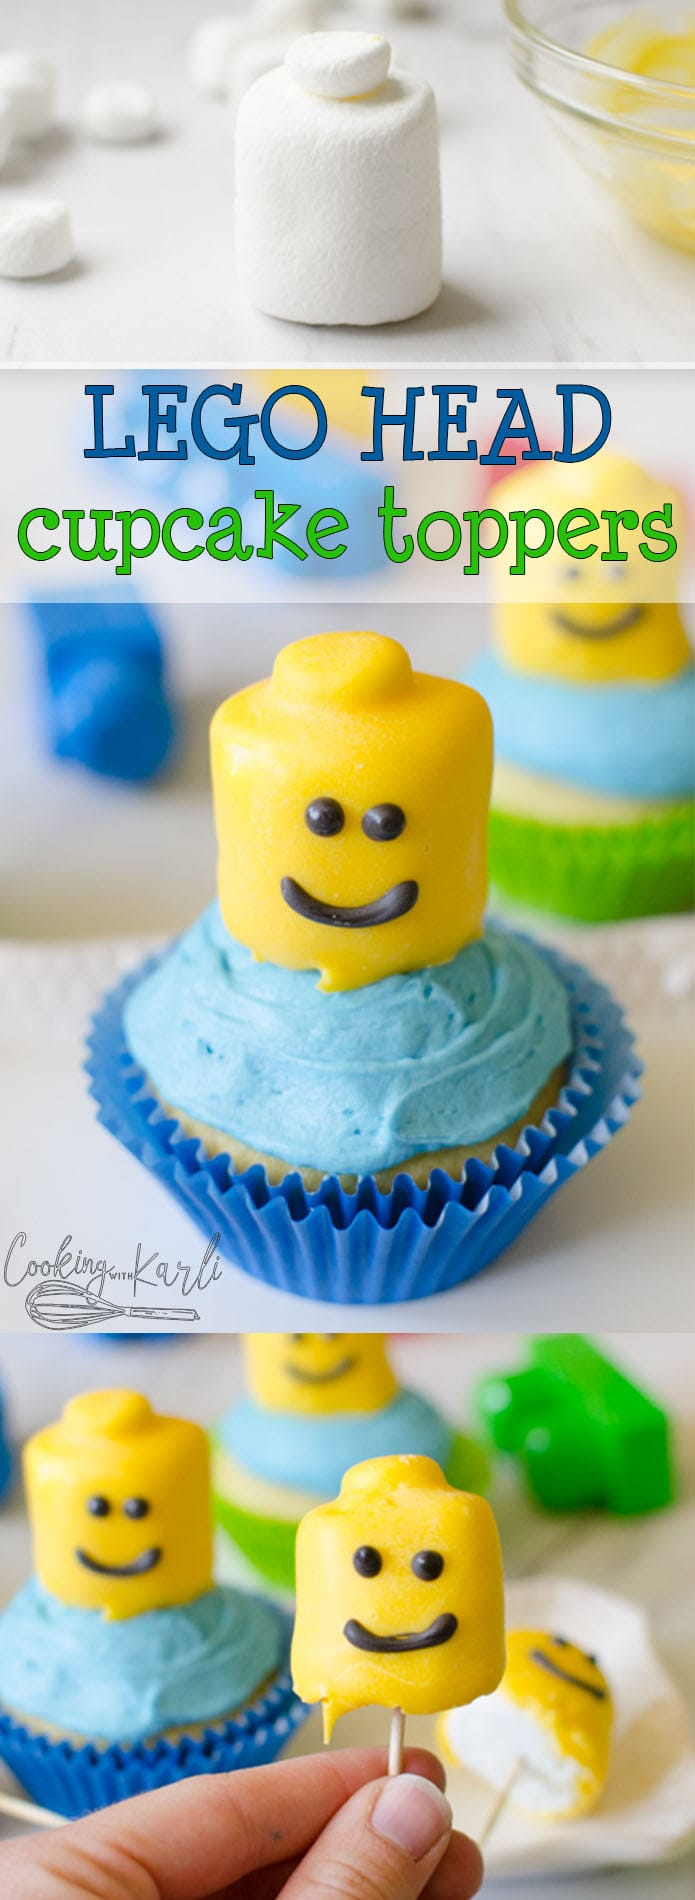 Lego Themed Birthday Cupcakes are super cute and so easy to make! The Lego Heads are made from Marshmallows and Chocolate Candy Melts and then are stuck into a cupcake using a toothpick. This is a fast and easy way to make themed birthday cupcakes. |Cooking with Karli| #legos #birthday #cupcakes #cake #themed #boy #5yearold #legohead #diy #easy